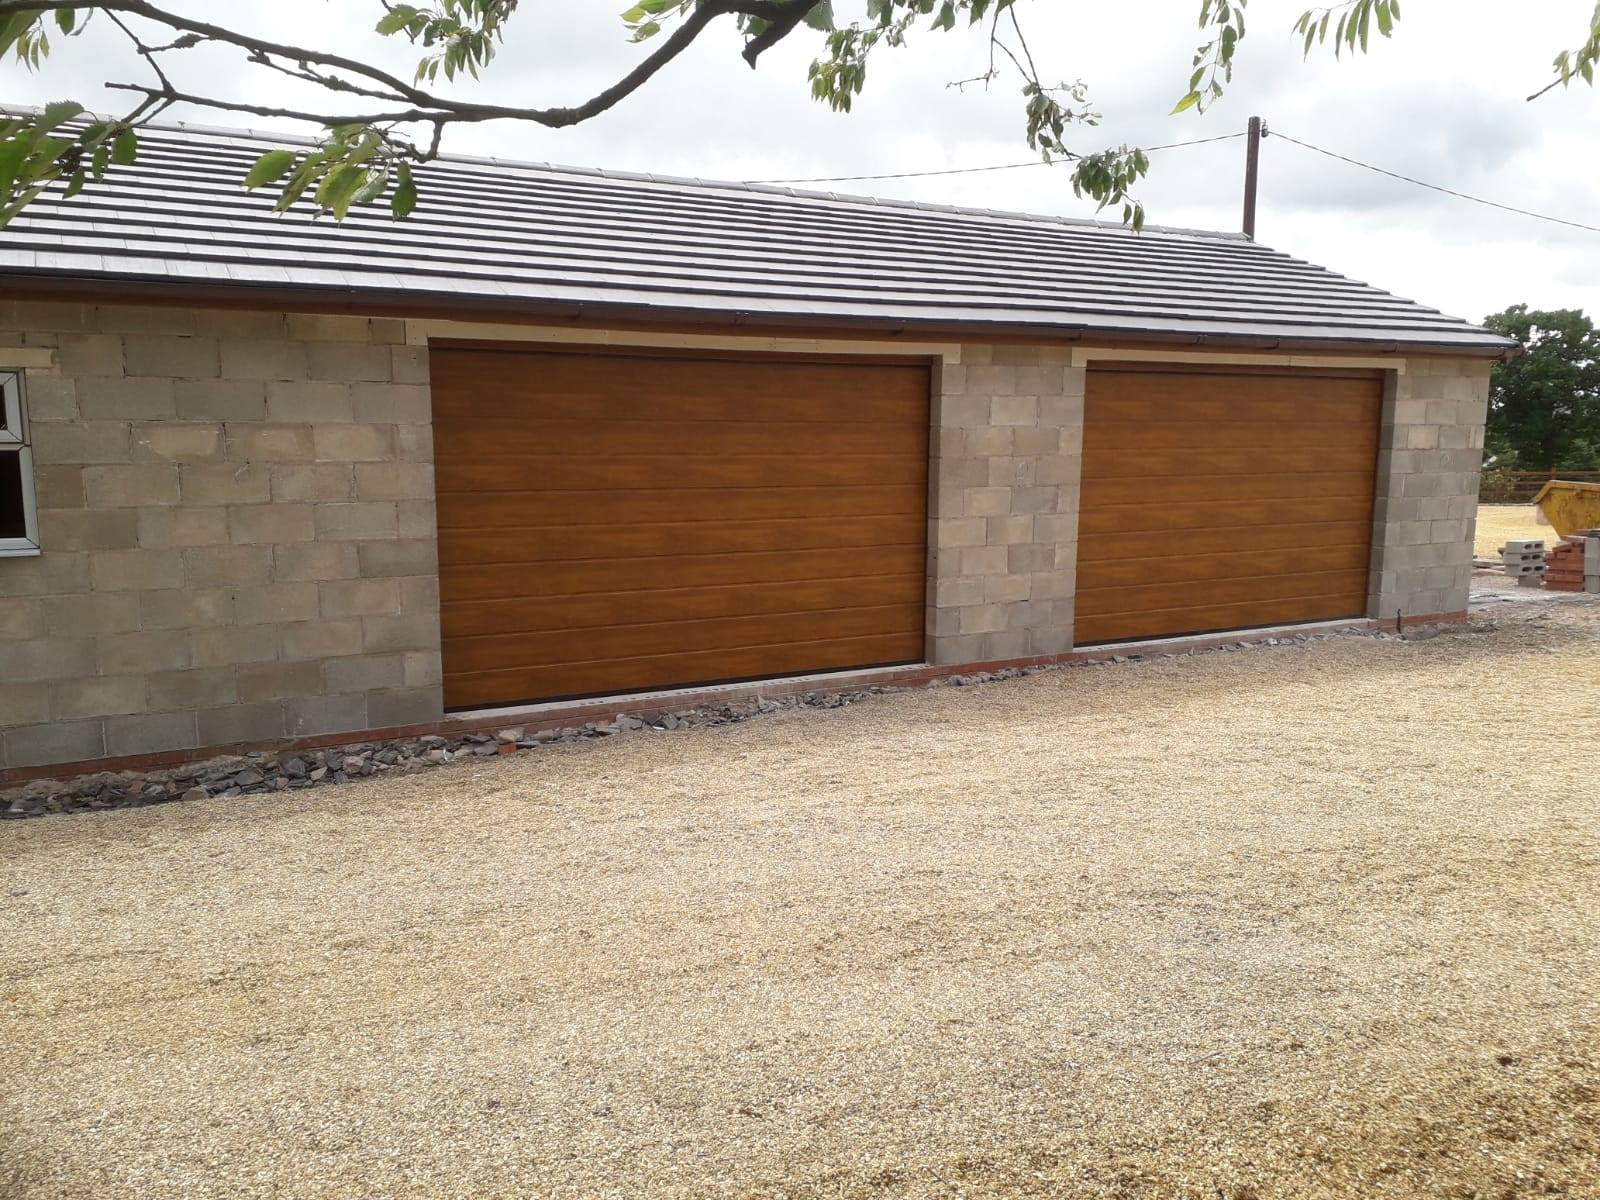 2 x M ribbed sectional garage doors in golden oak